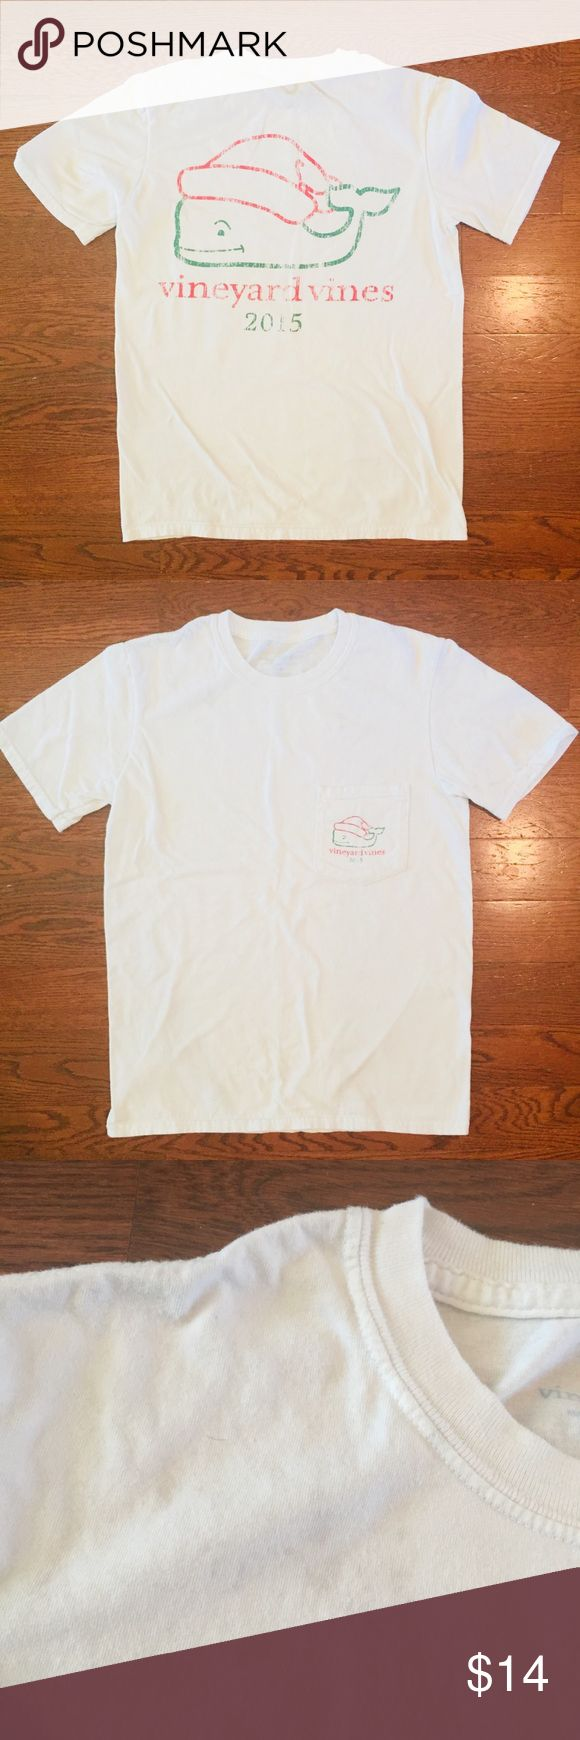 Vineyard Vines White Short Sleeve T Shirt Vineyard Vines CHILD White Short Sleeve T Shirt  Size Small  Xmas Holidays theme 2015 100% cotton Preowned. Some light stains along shoulders on both sides. See pictures. Vineyard Vines Shirts & Tops Tees - Short Sleeve